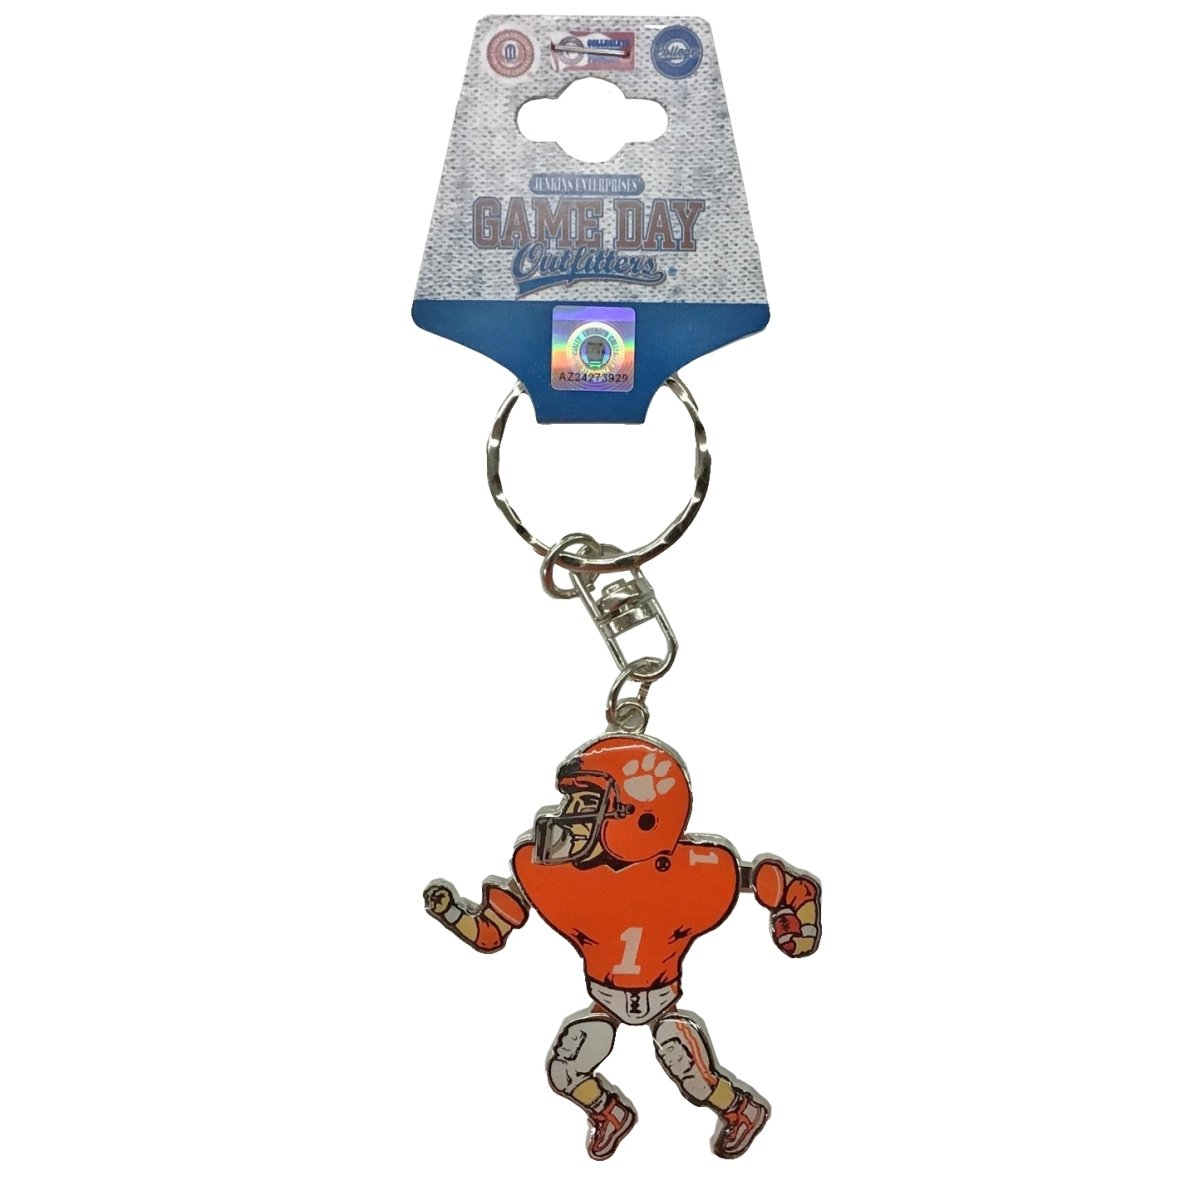 Keychain Football Player Movable - Mr. Knickerbocker